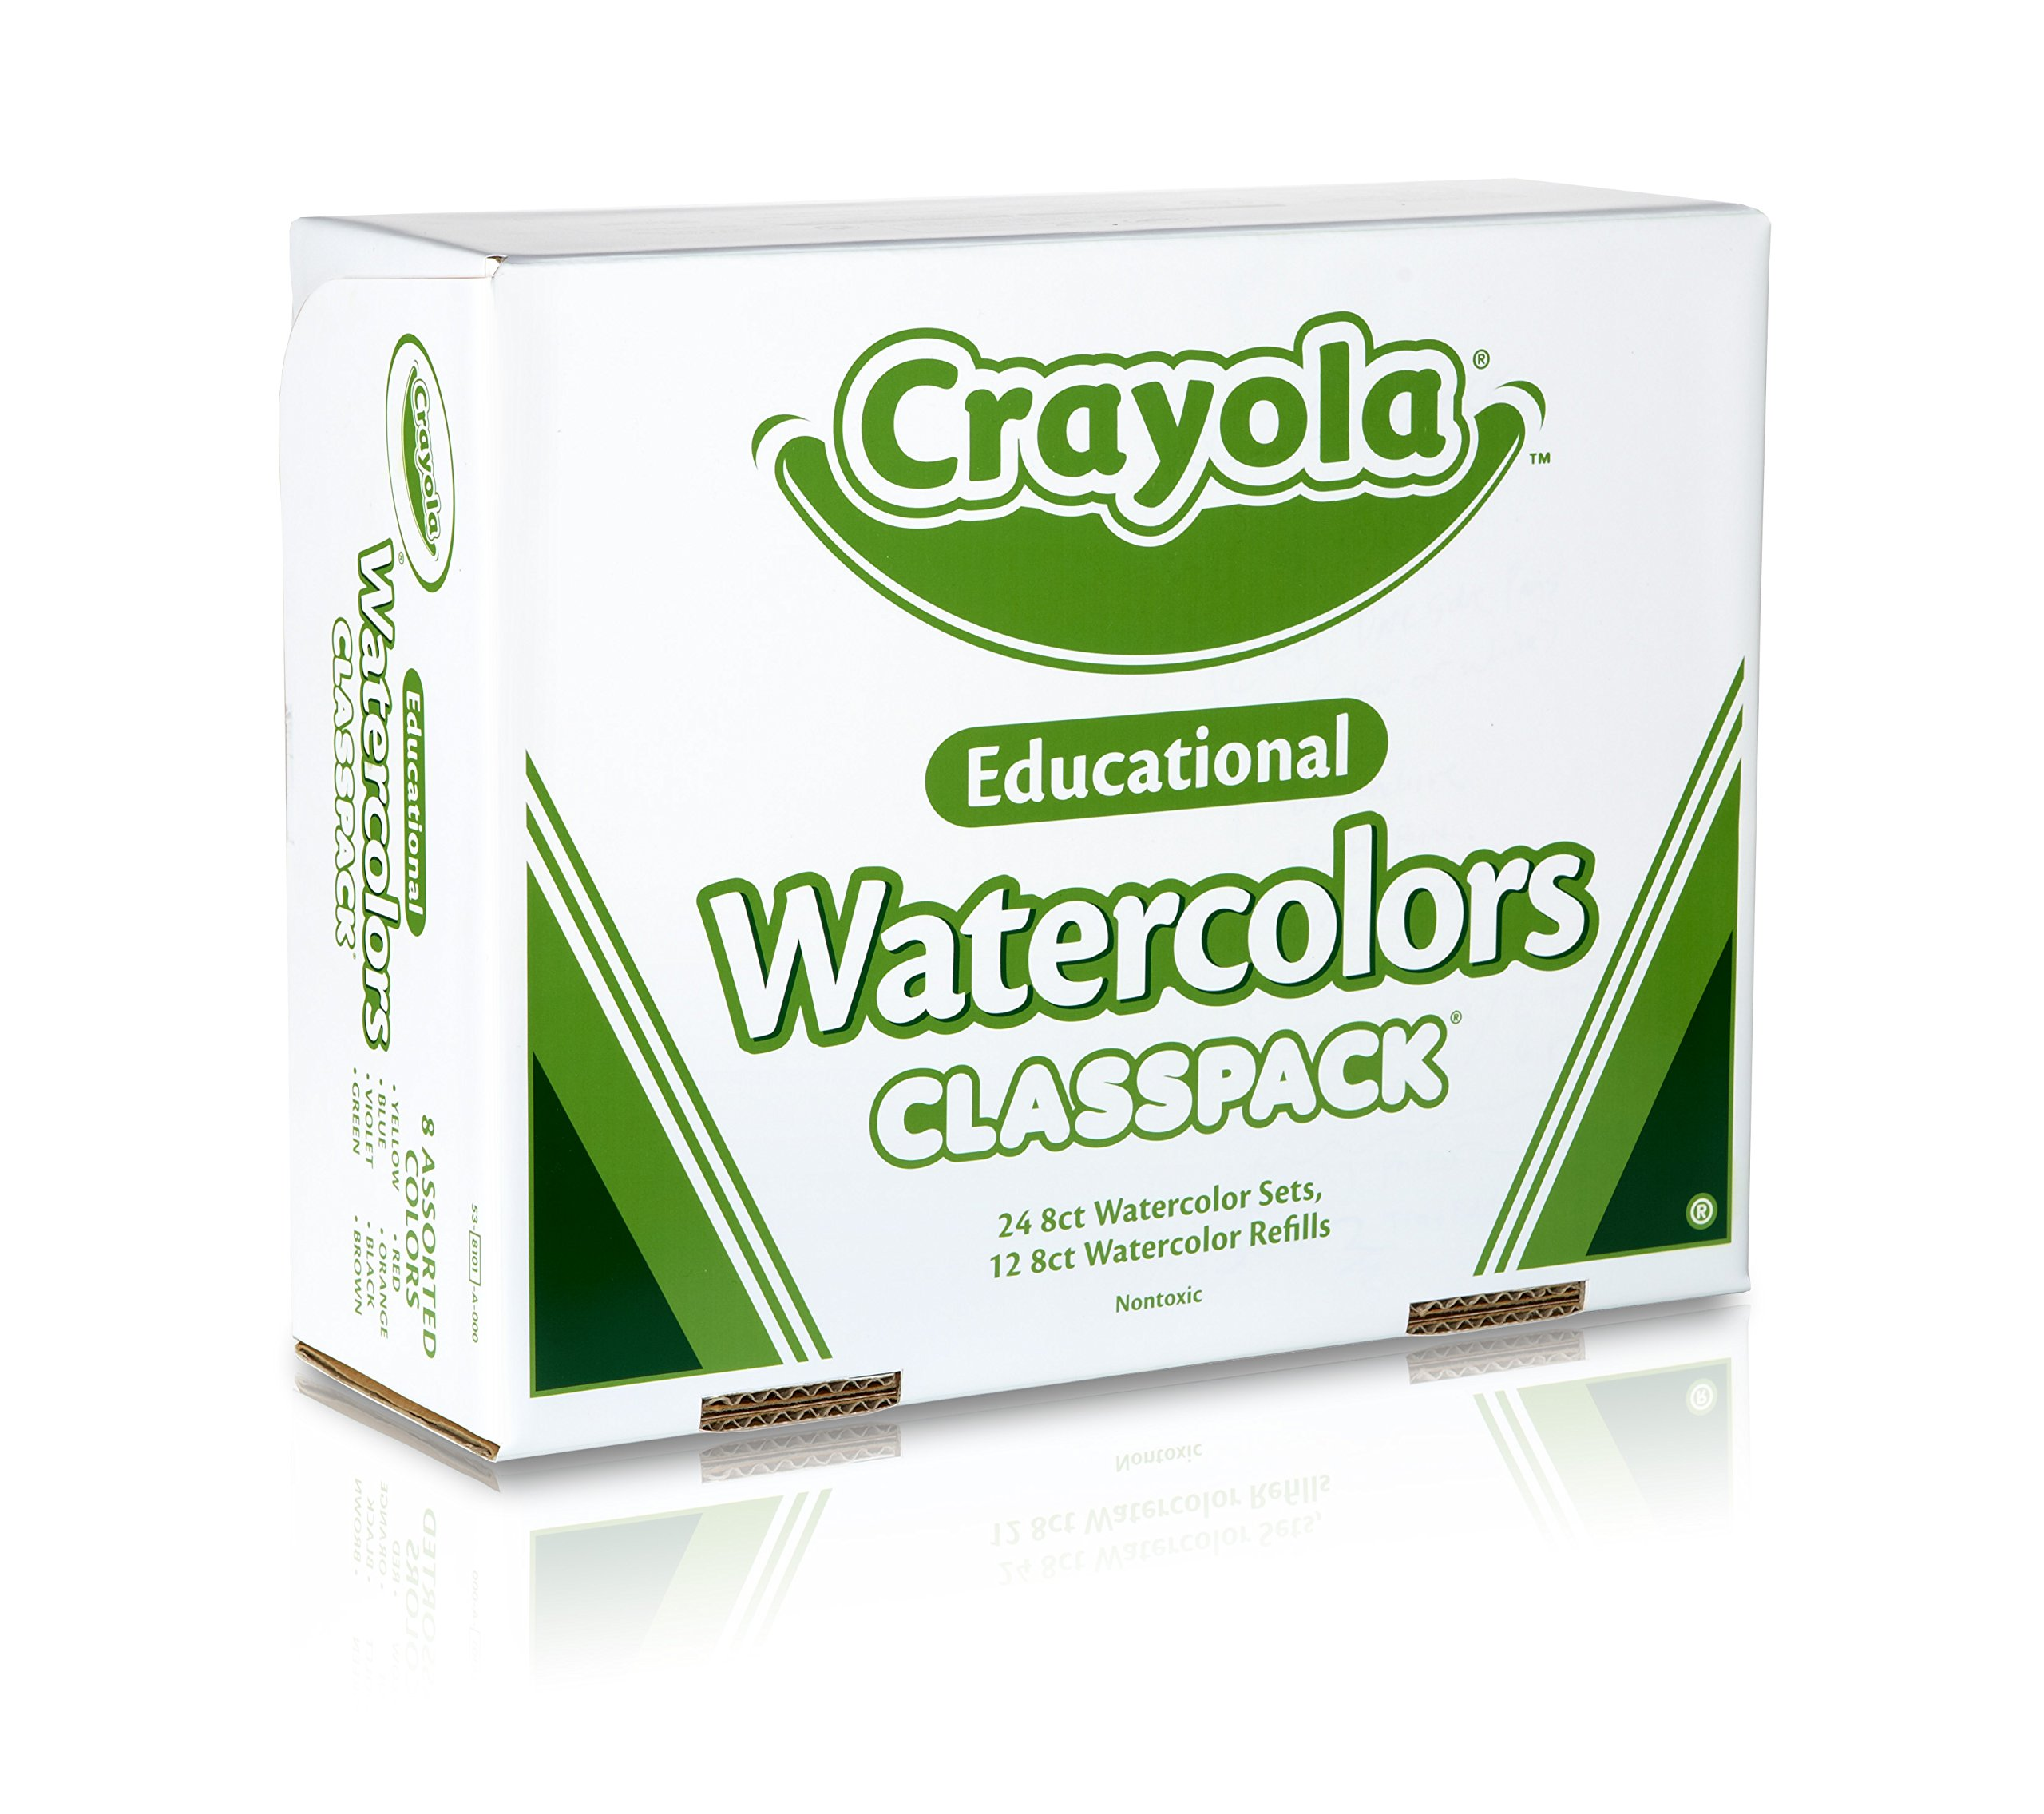 Crayola Educational Watercolors Classpack by Crayola (Image #2)